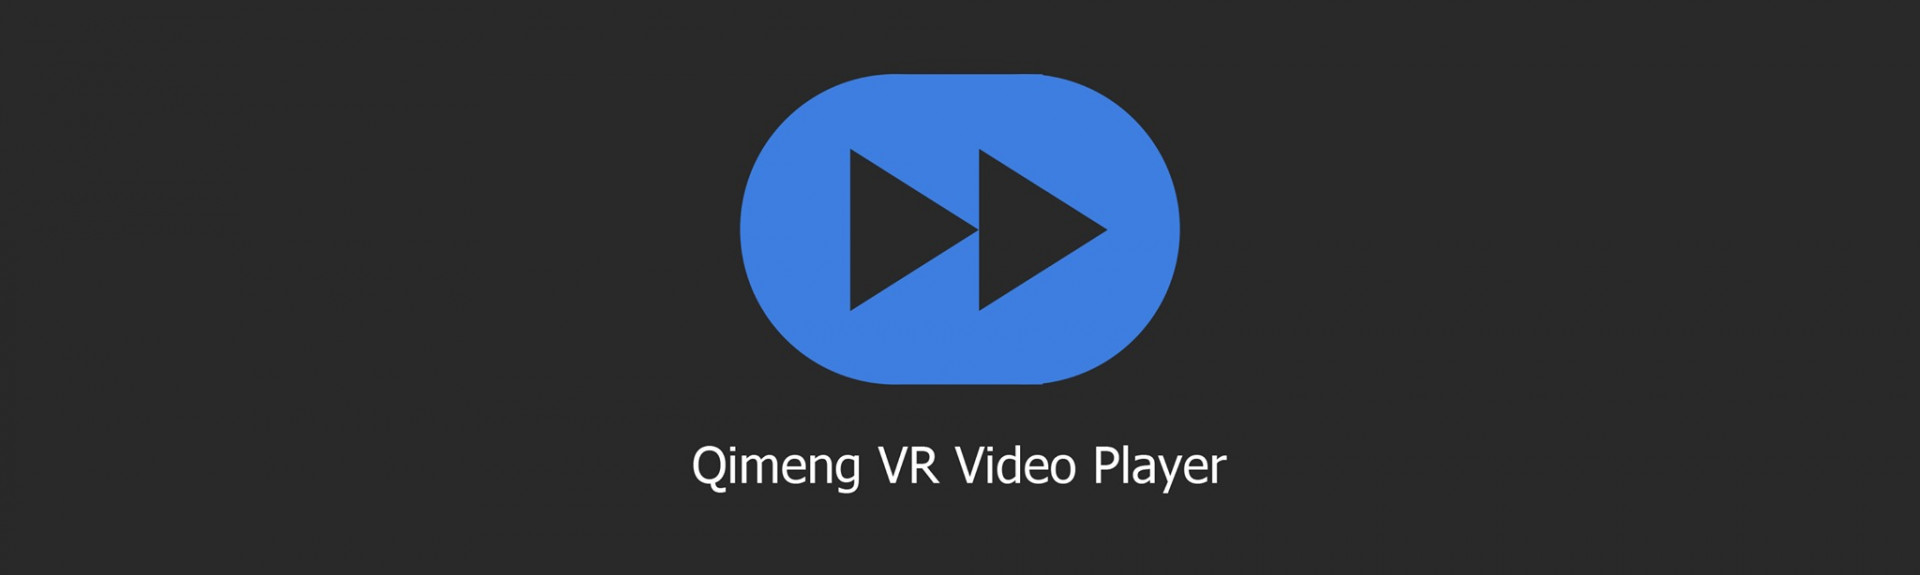 Qimeng VR Video Player